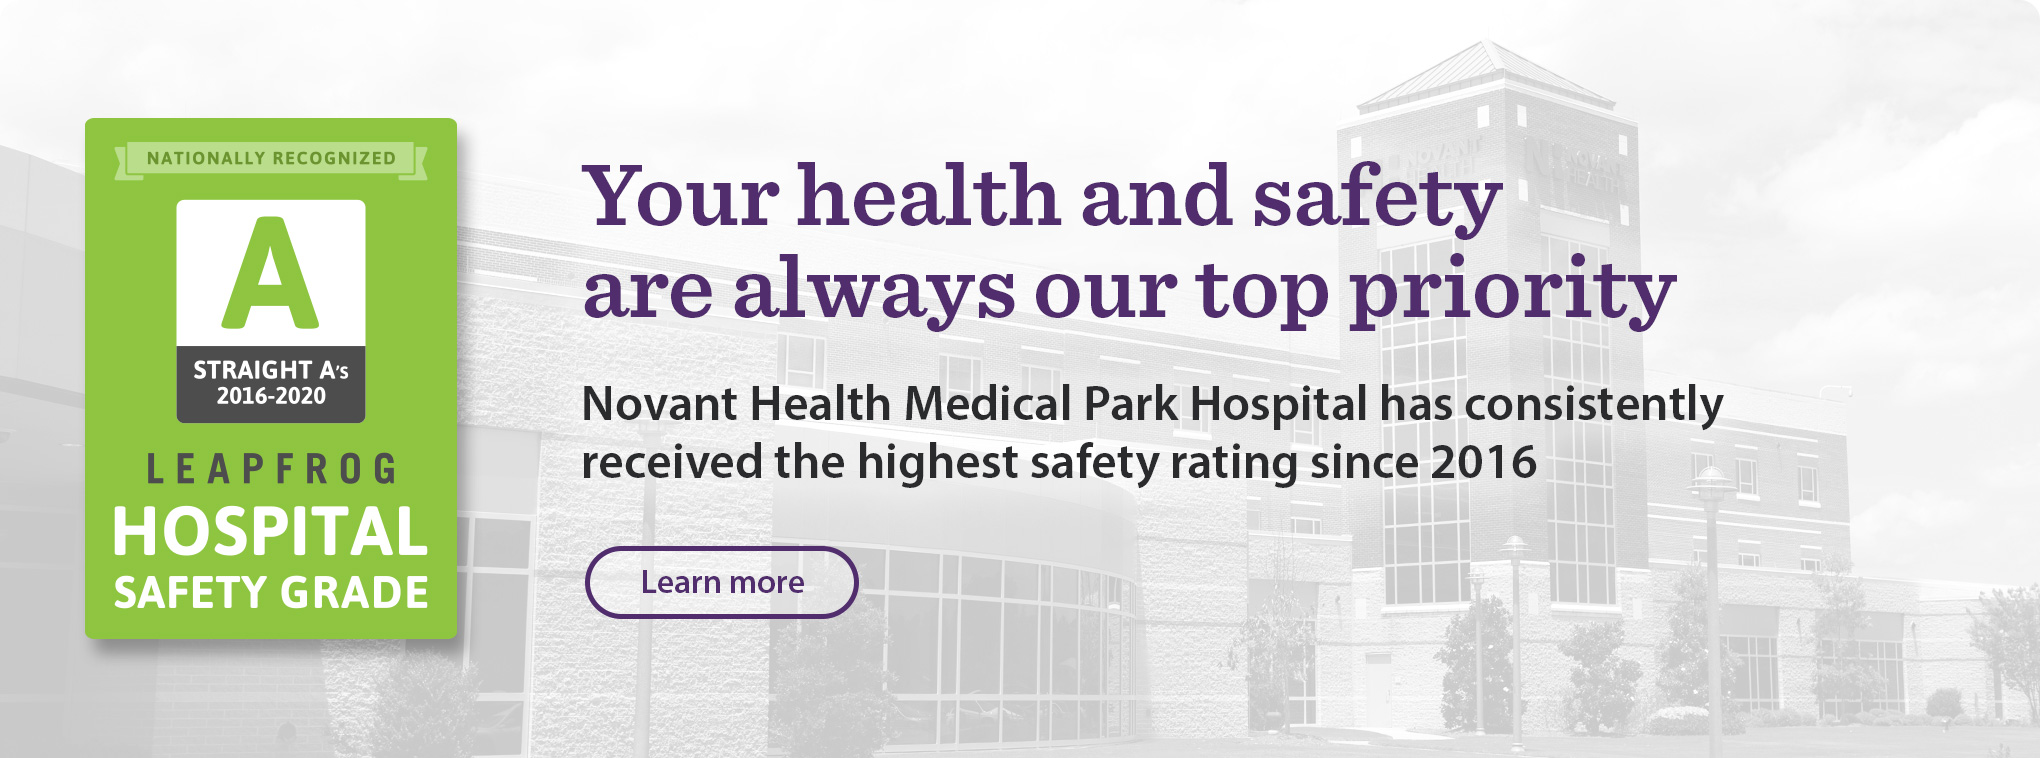 Novant Health Medical Park Hospital has consistently received the highest safety rating since 2016